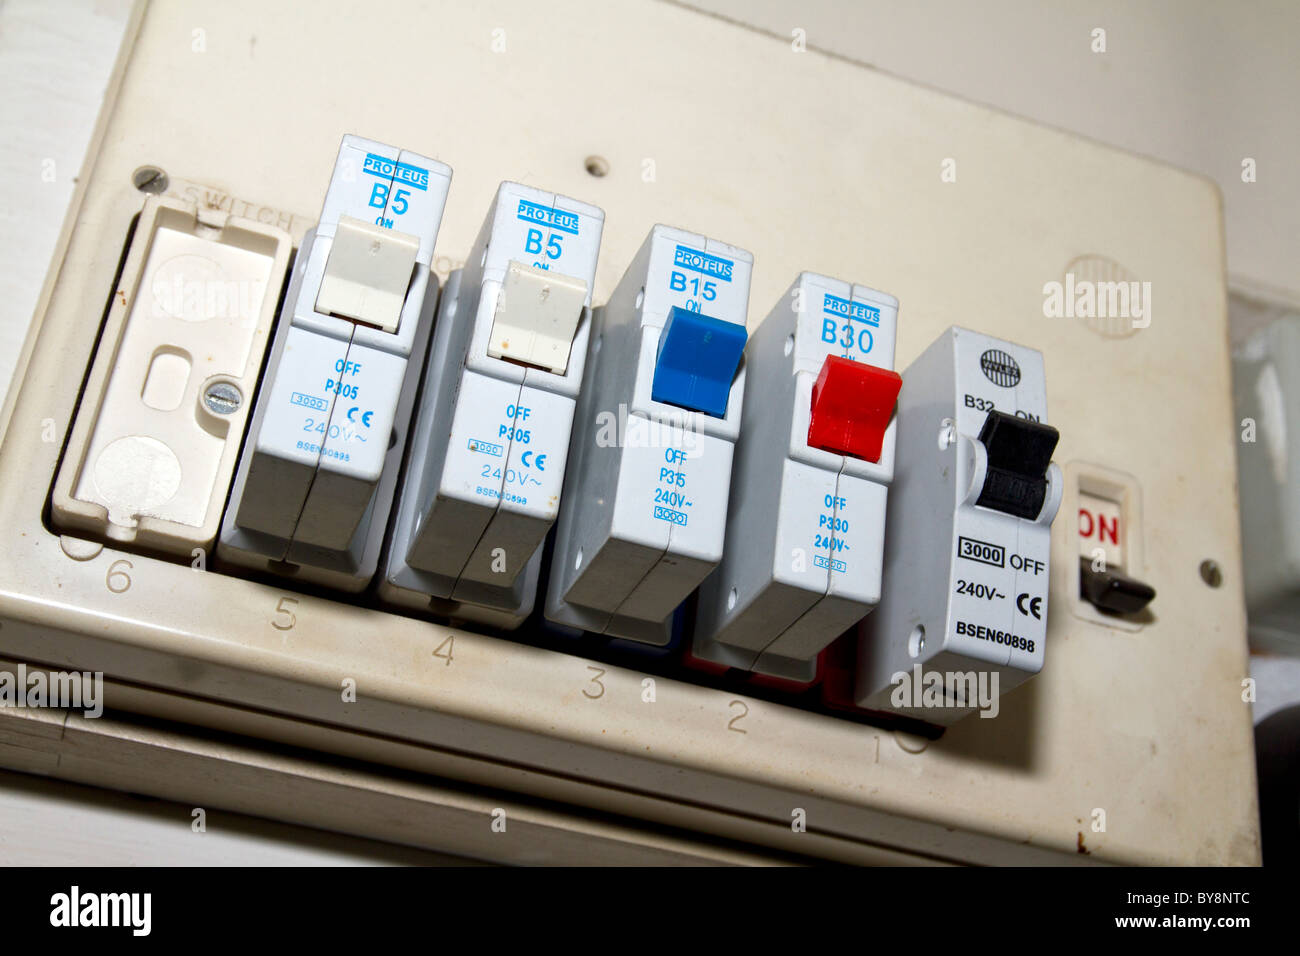 hight resolution of uk old electric fuse box in a london house stock photo 33998844 install 200 amp fuses in box electric fuse box